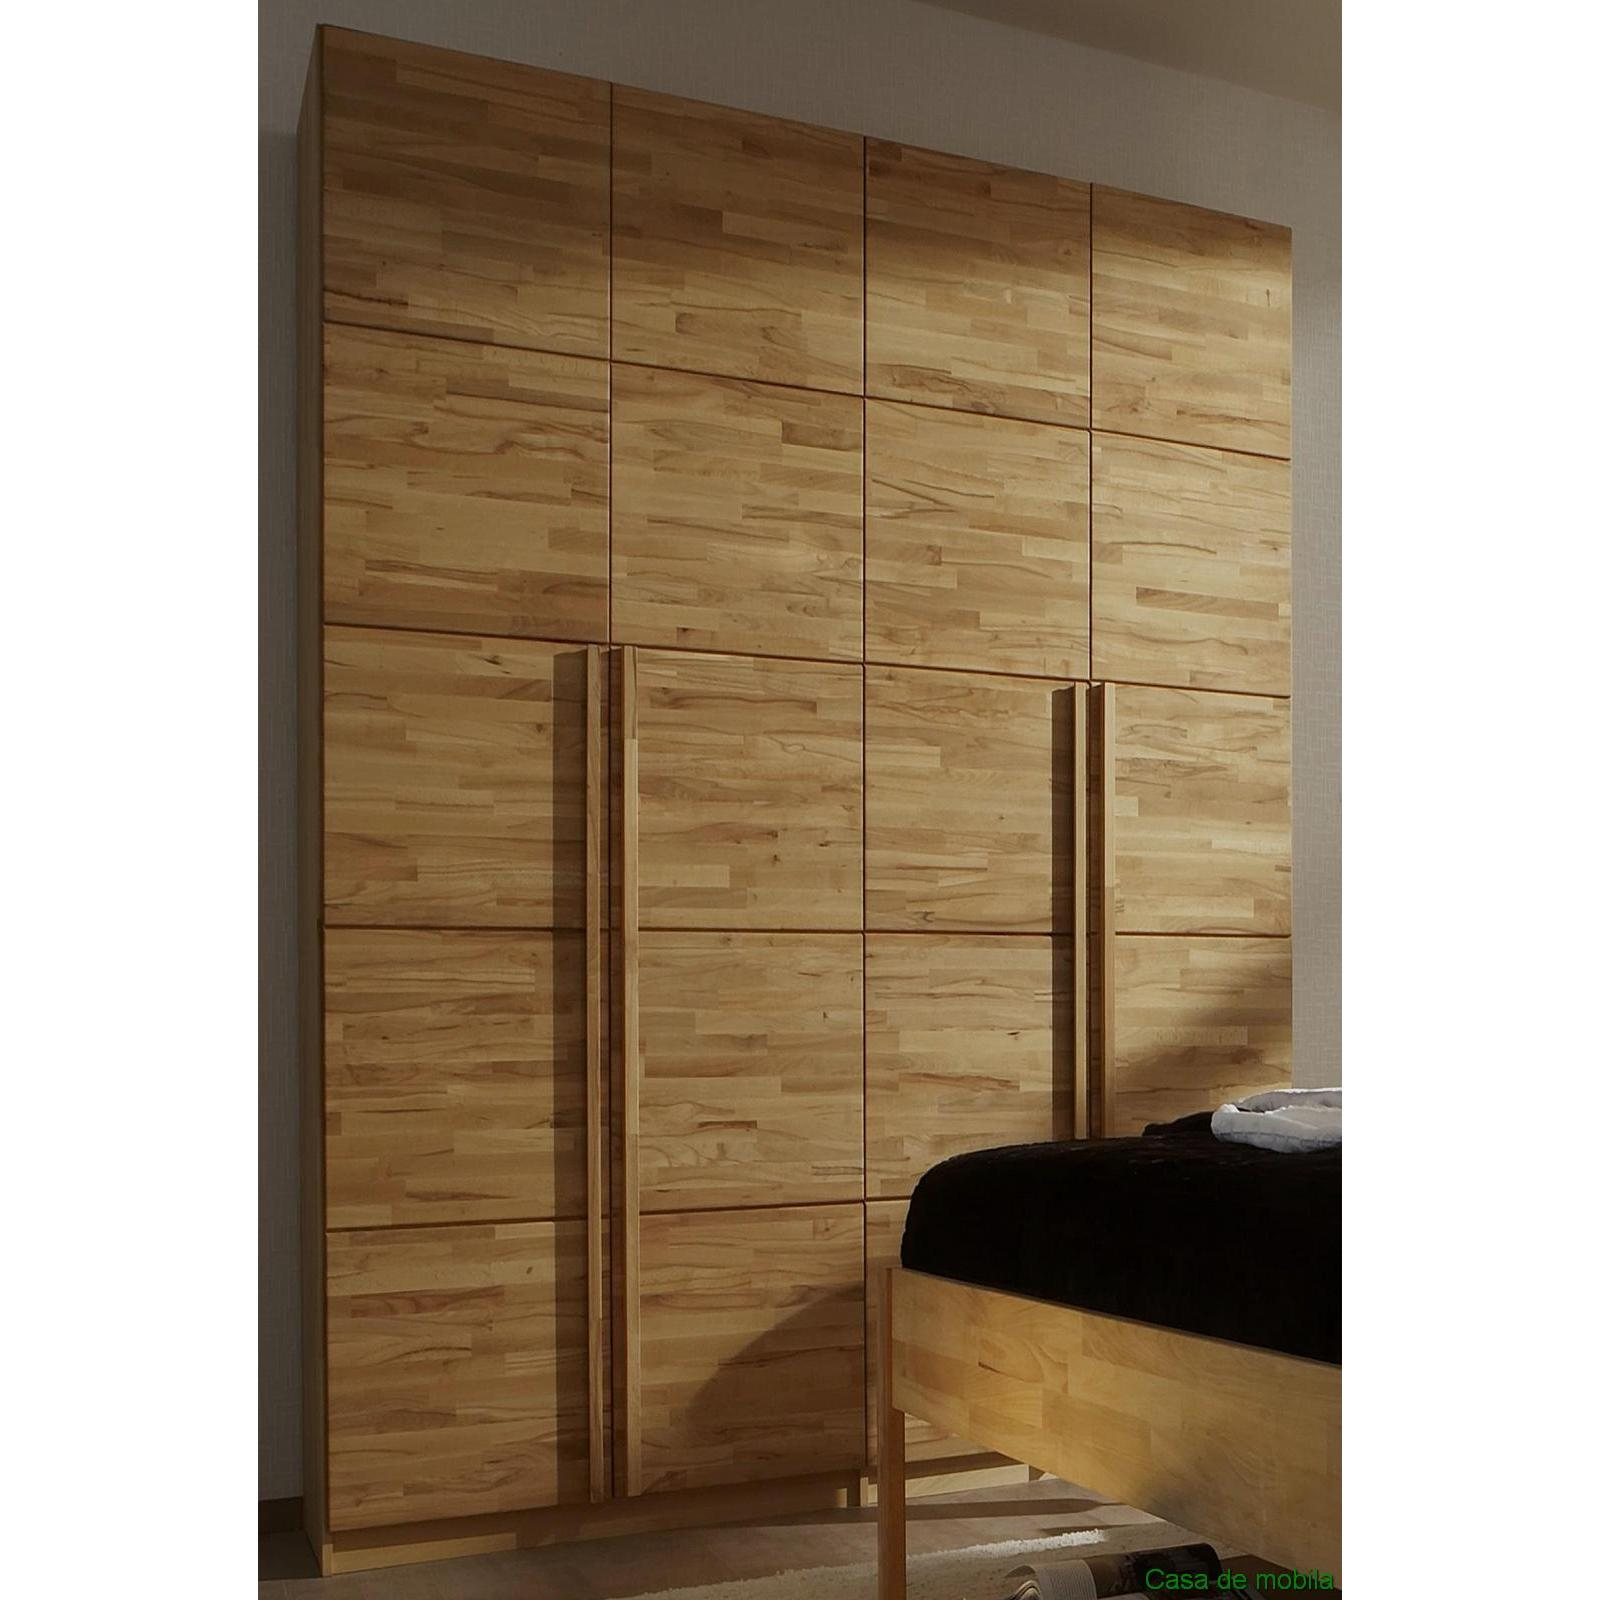 m h kleiderschrank kernbuche massiv natur ge lt front6 4 t rig. Black Bedroom Furniture Sets. Home Design Ideas